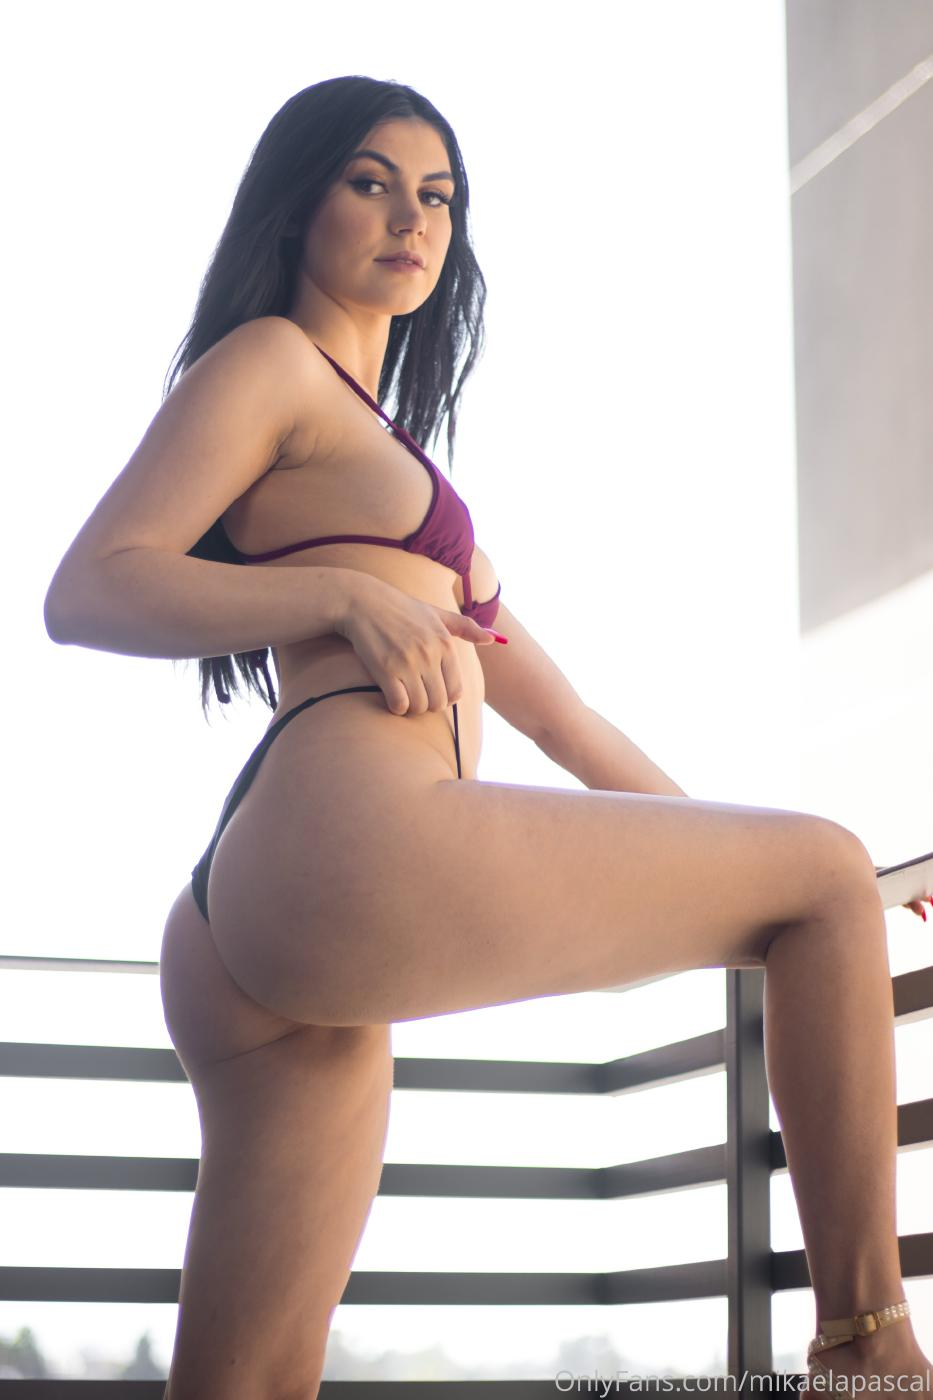 Mikaela Pascal Onlyfans March Extras Leaked 0031